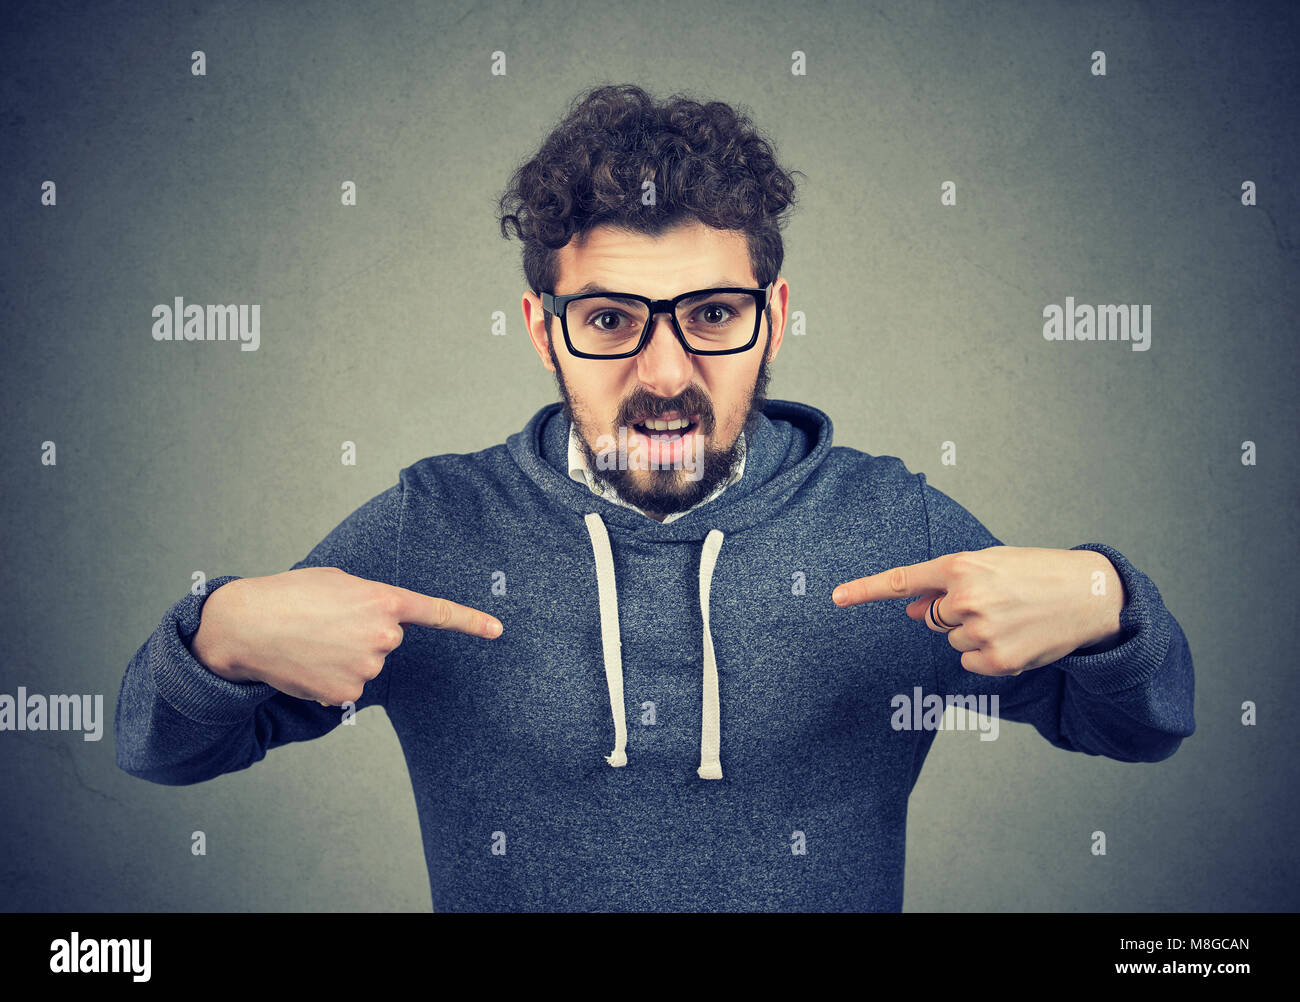 Young angry man in eyeglasses overreacting while pointing at himself looking offended. - Stock Image